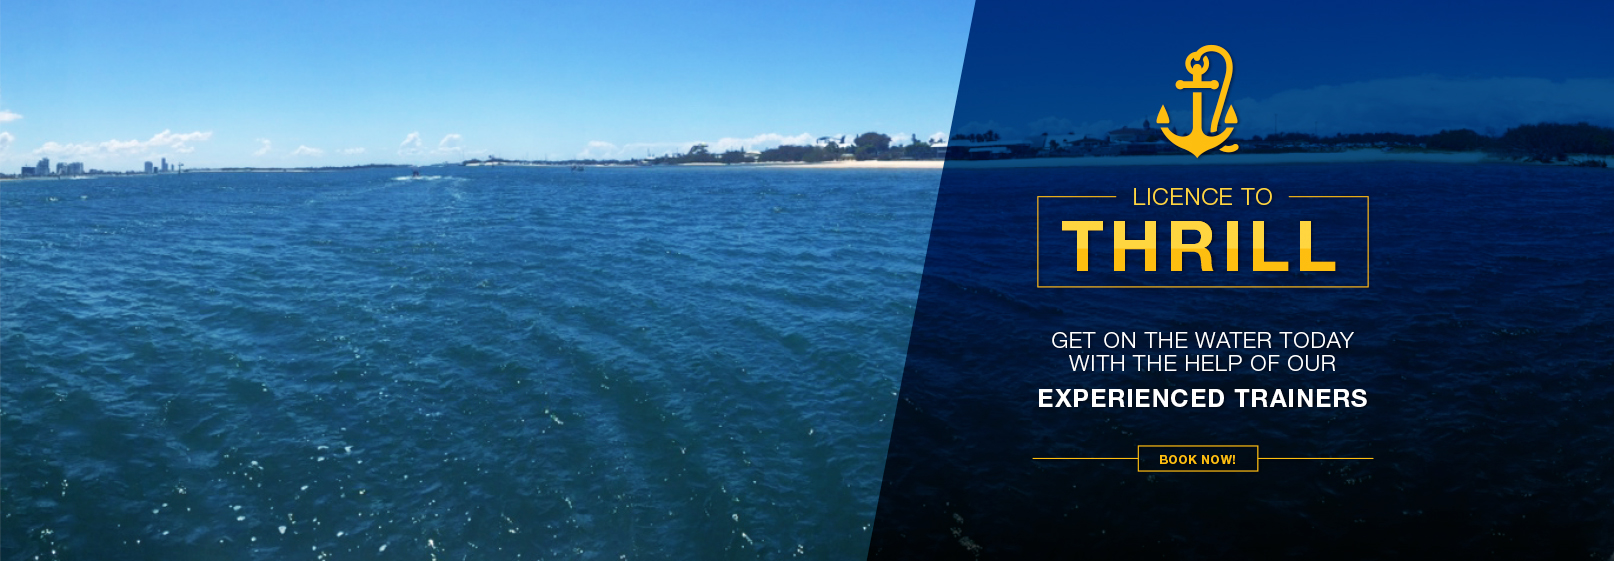 Gold Coast Boat & Jetski Licenses online now